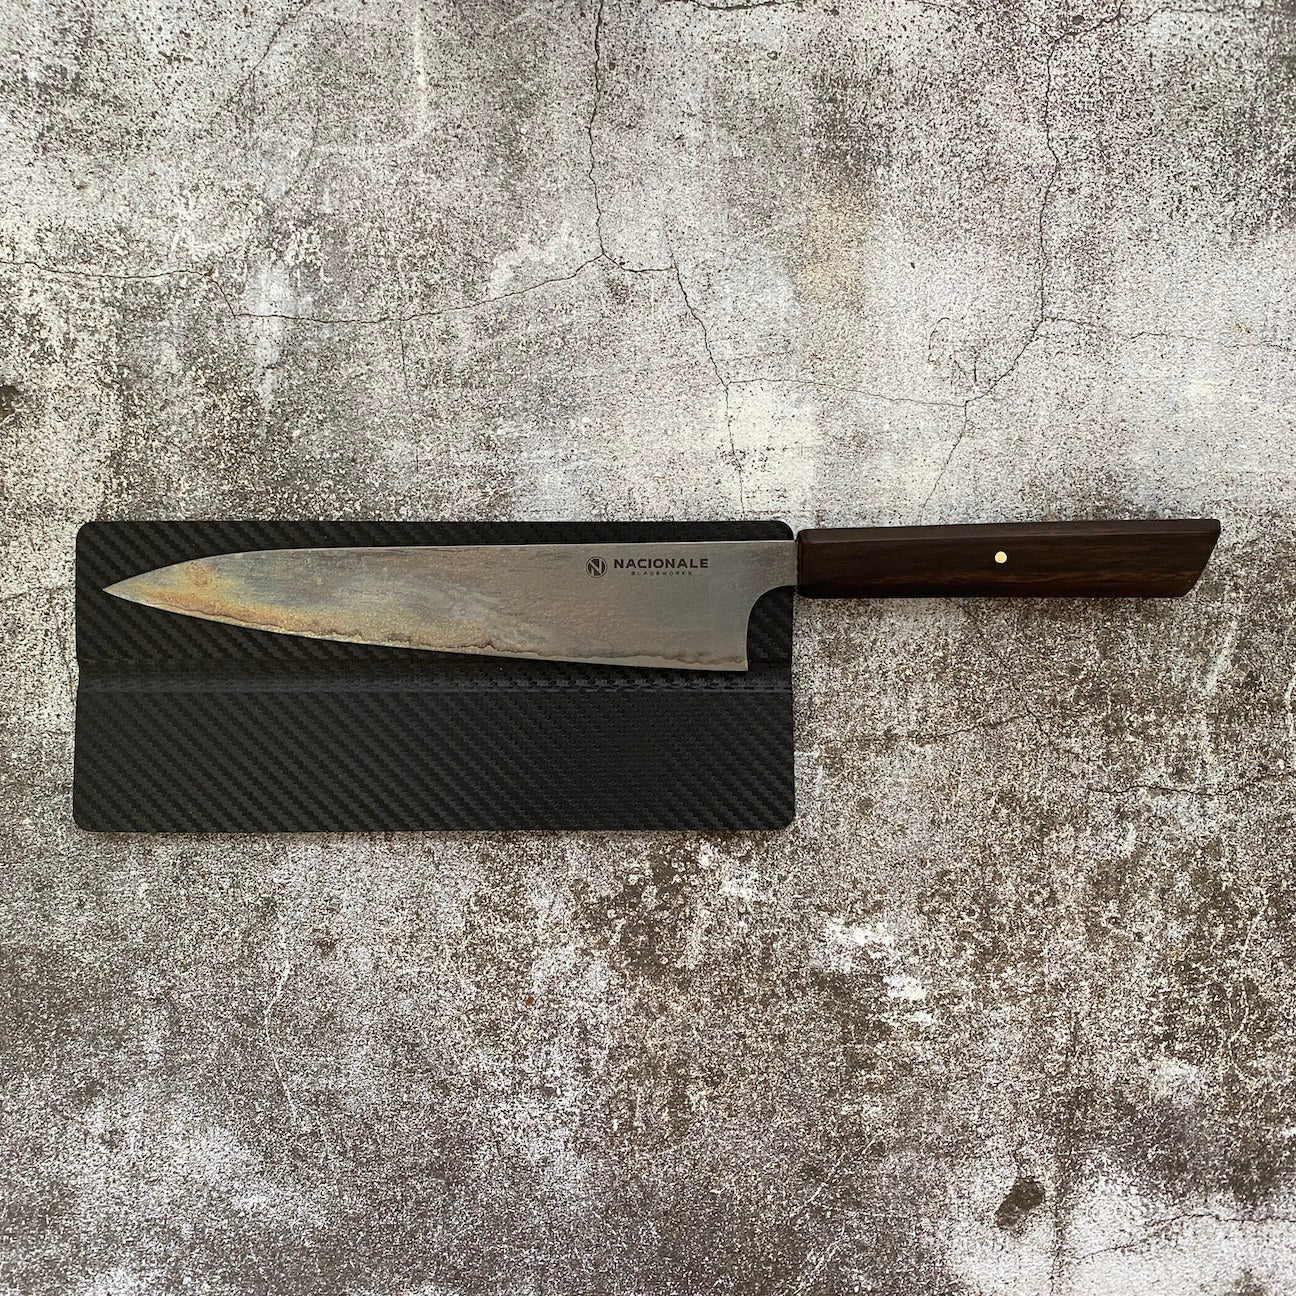 215mm Magnetic Knife Guard + Leather Strop